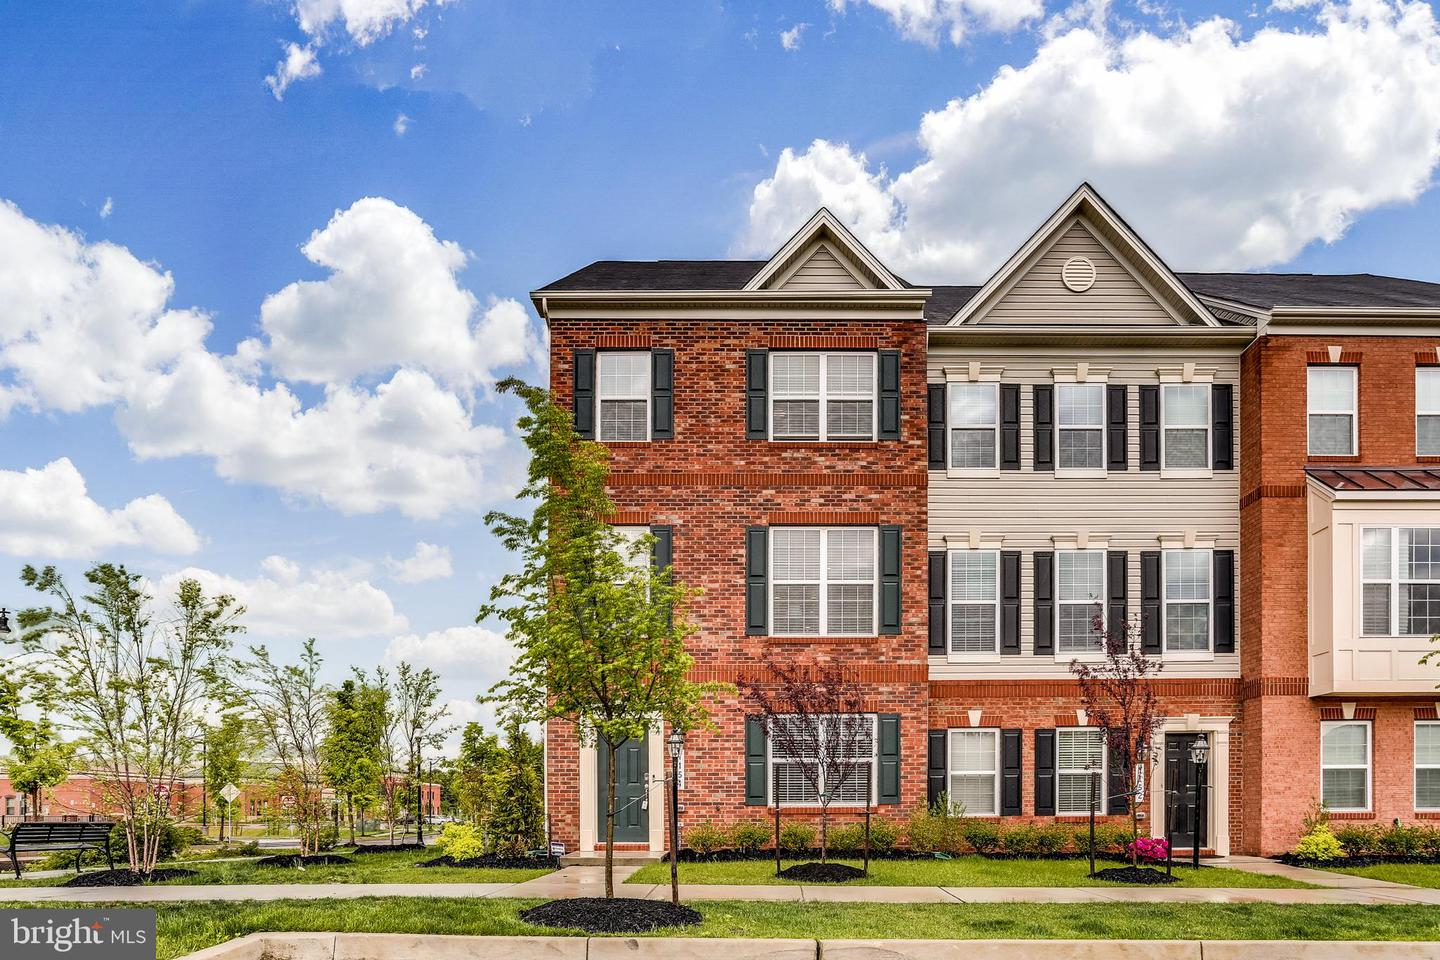 7154 Beaumont Pl Hanover MD 21076